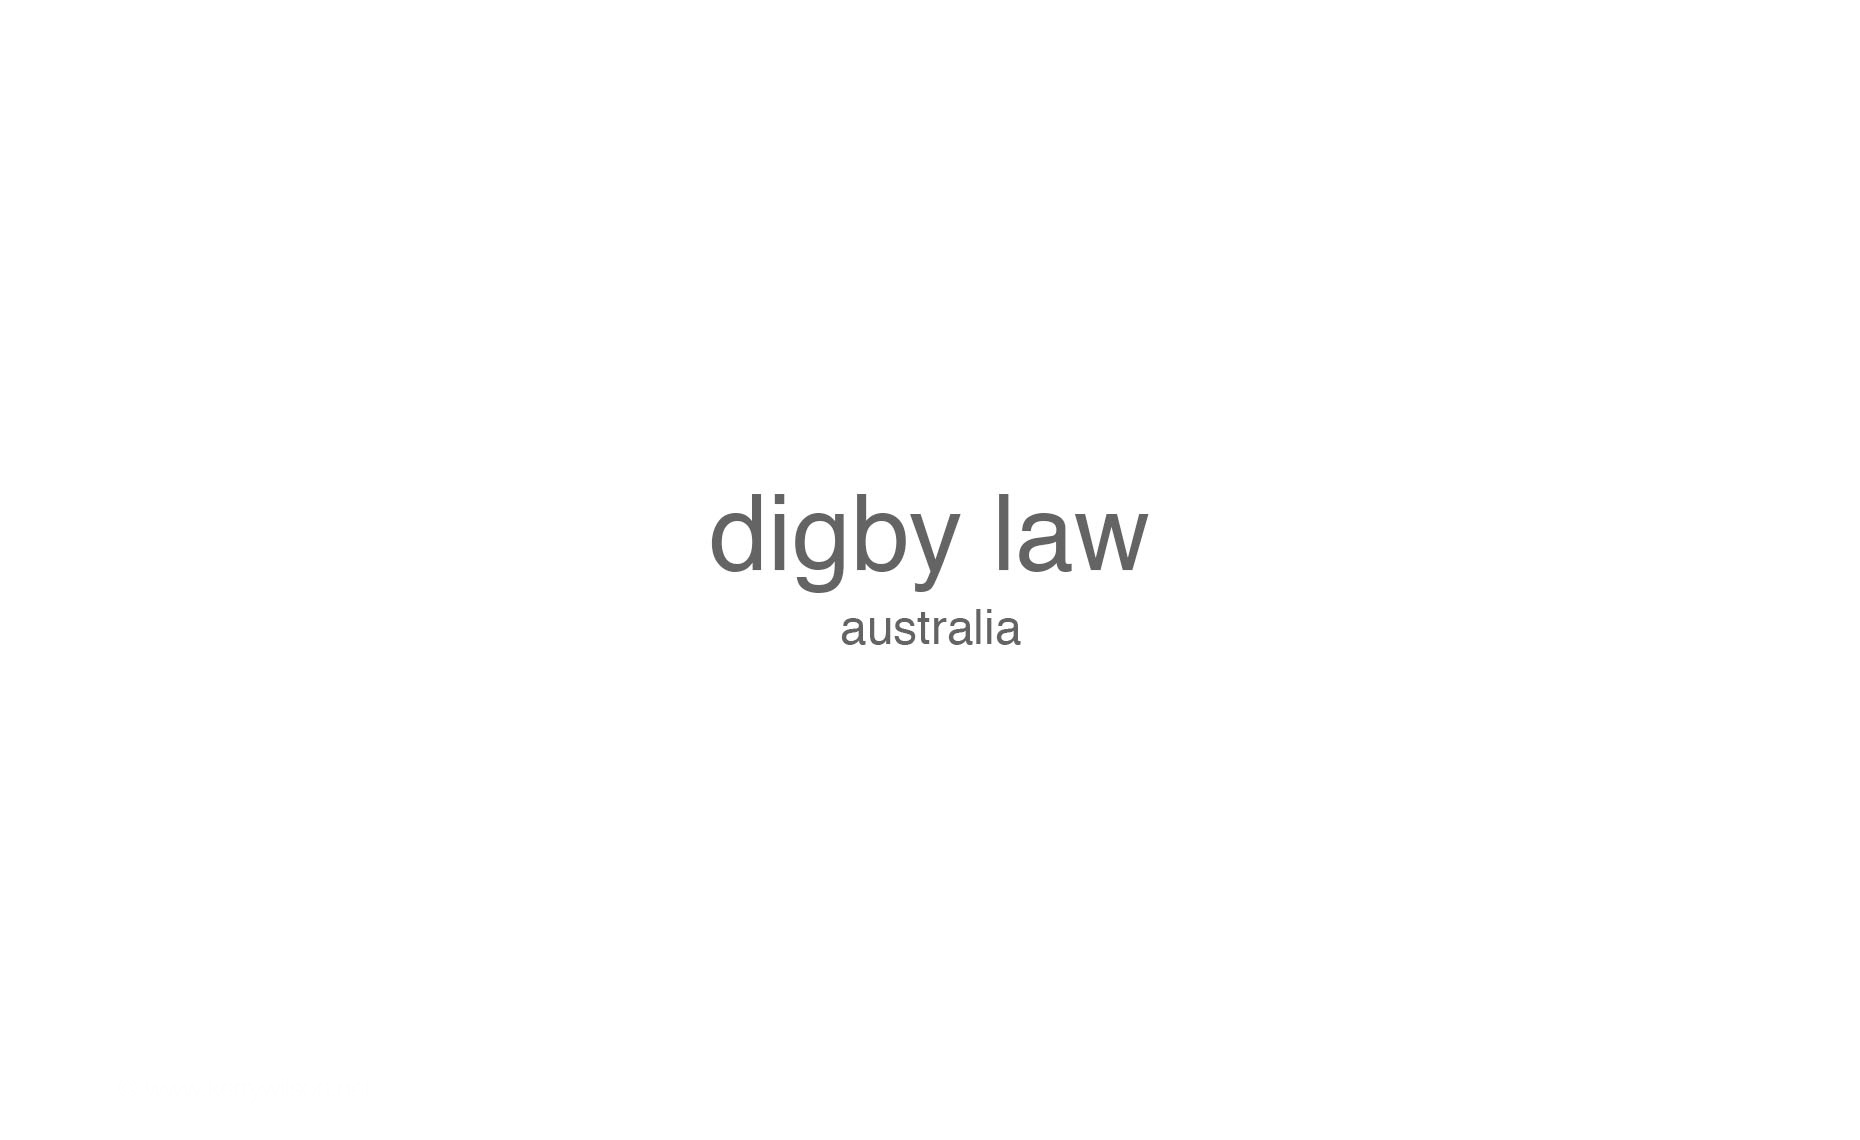 digby_law